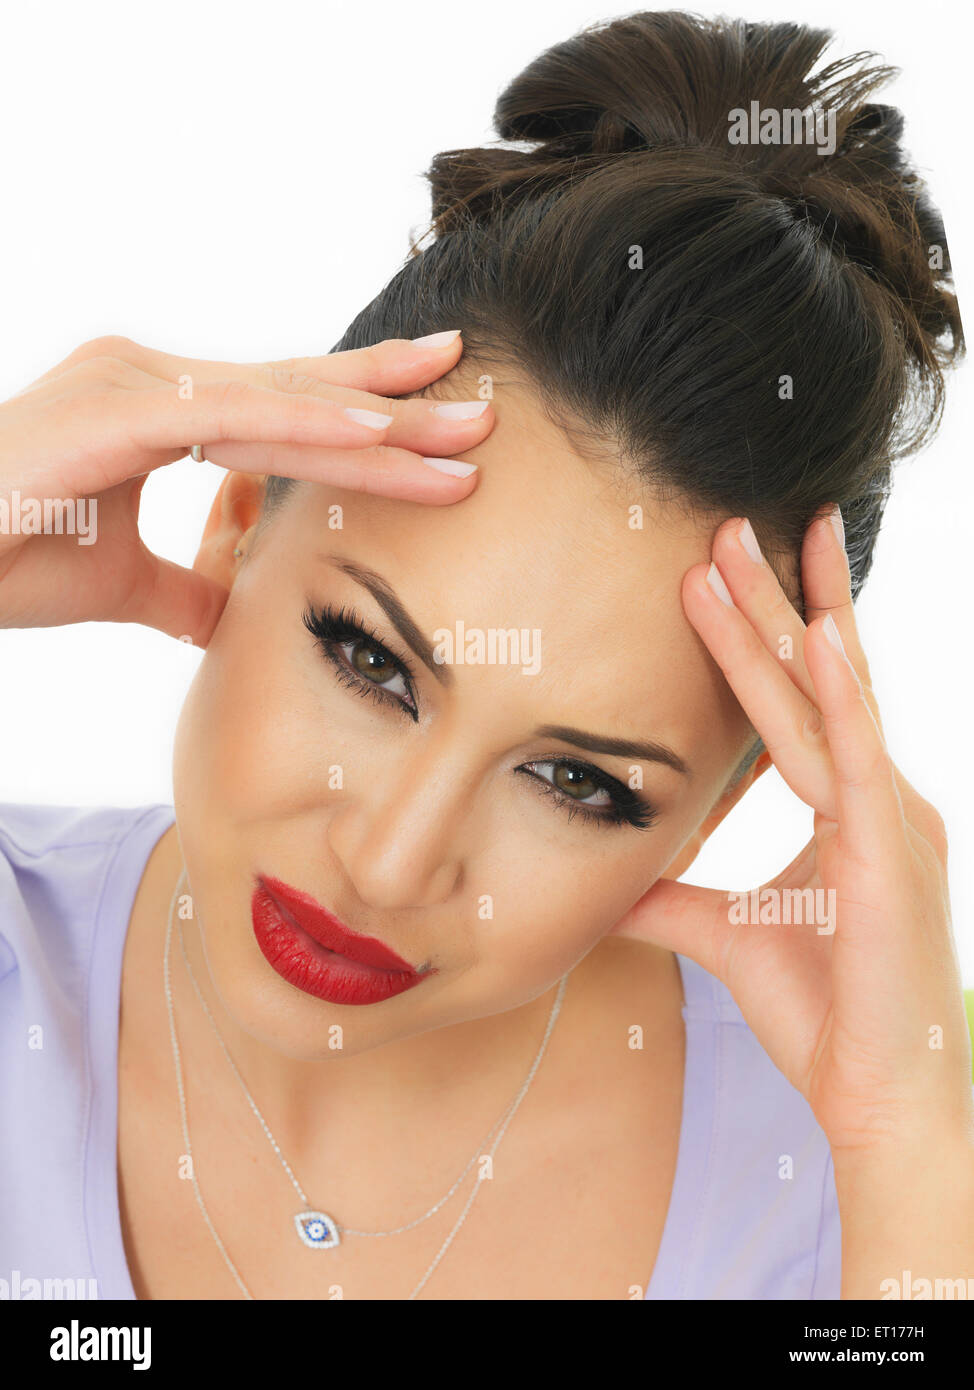 Beautiful Young Hispanic Woman Suffering With A headache and Feeling Unwell Shot Against A White Background - Stock Image